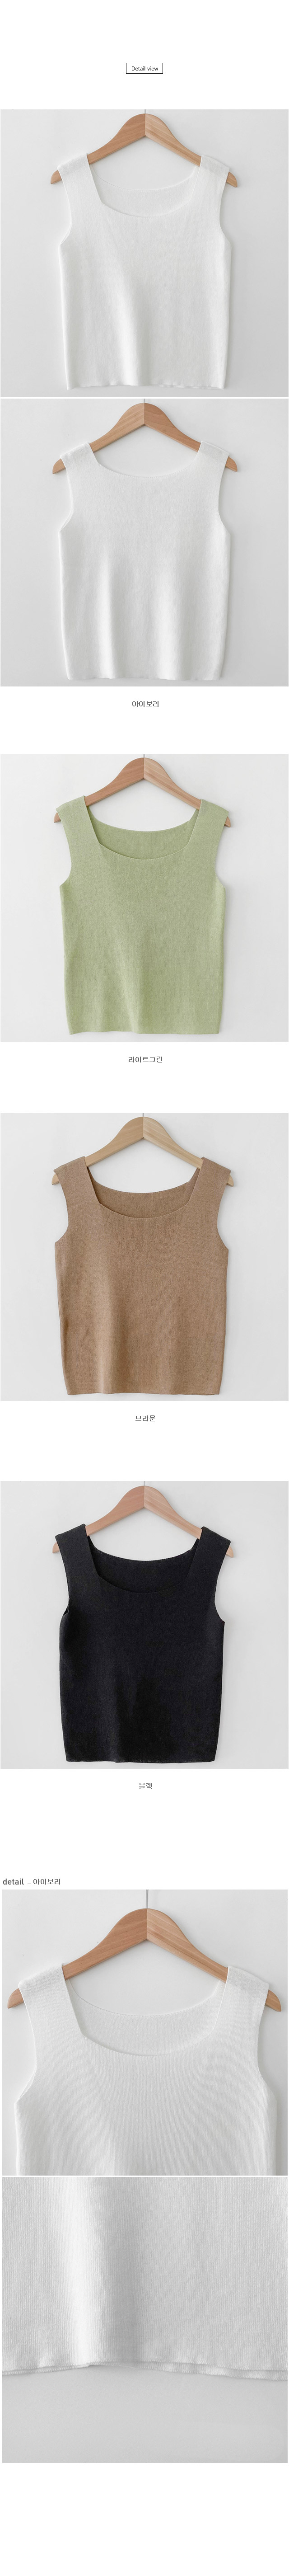 Salty Simple Square Knitwear Sleeveless - Black Same Day Shipping